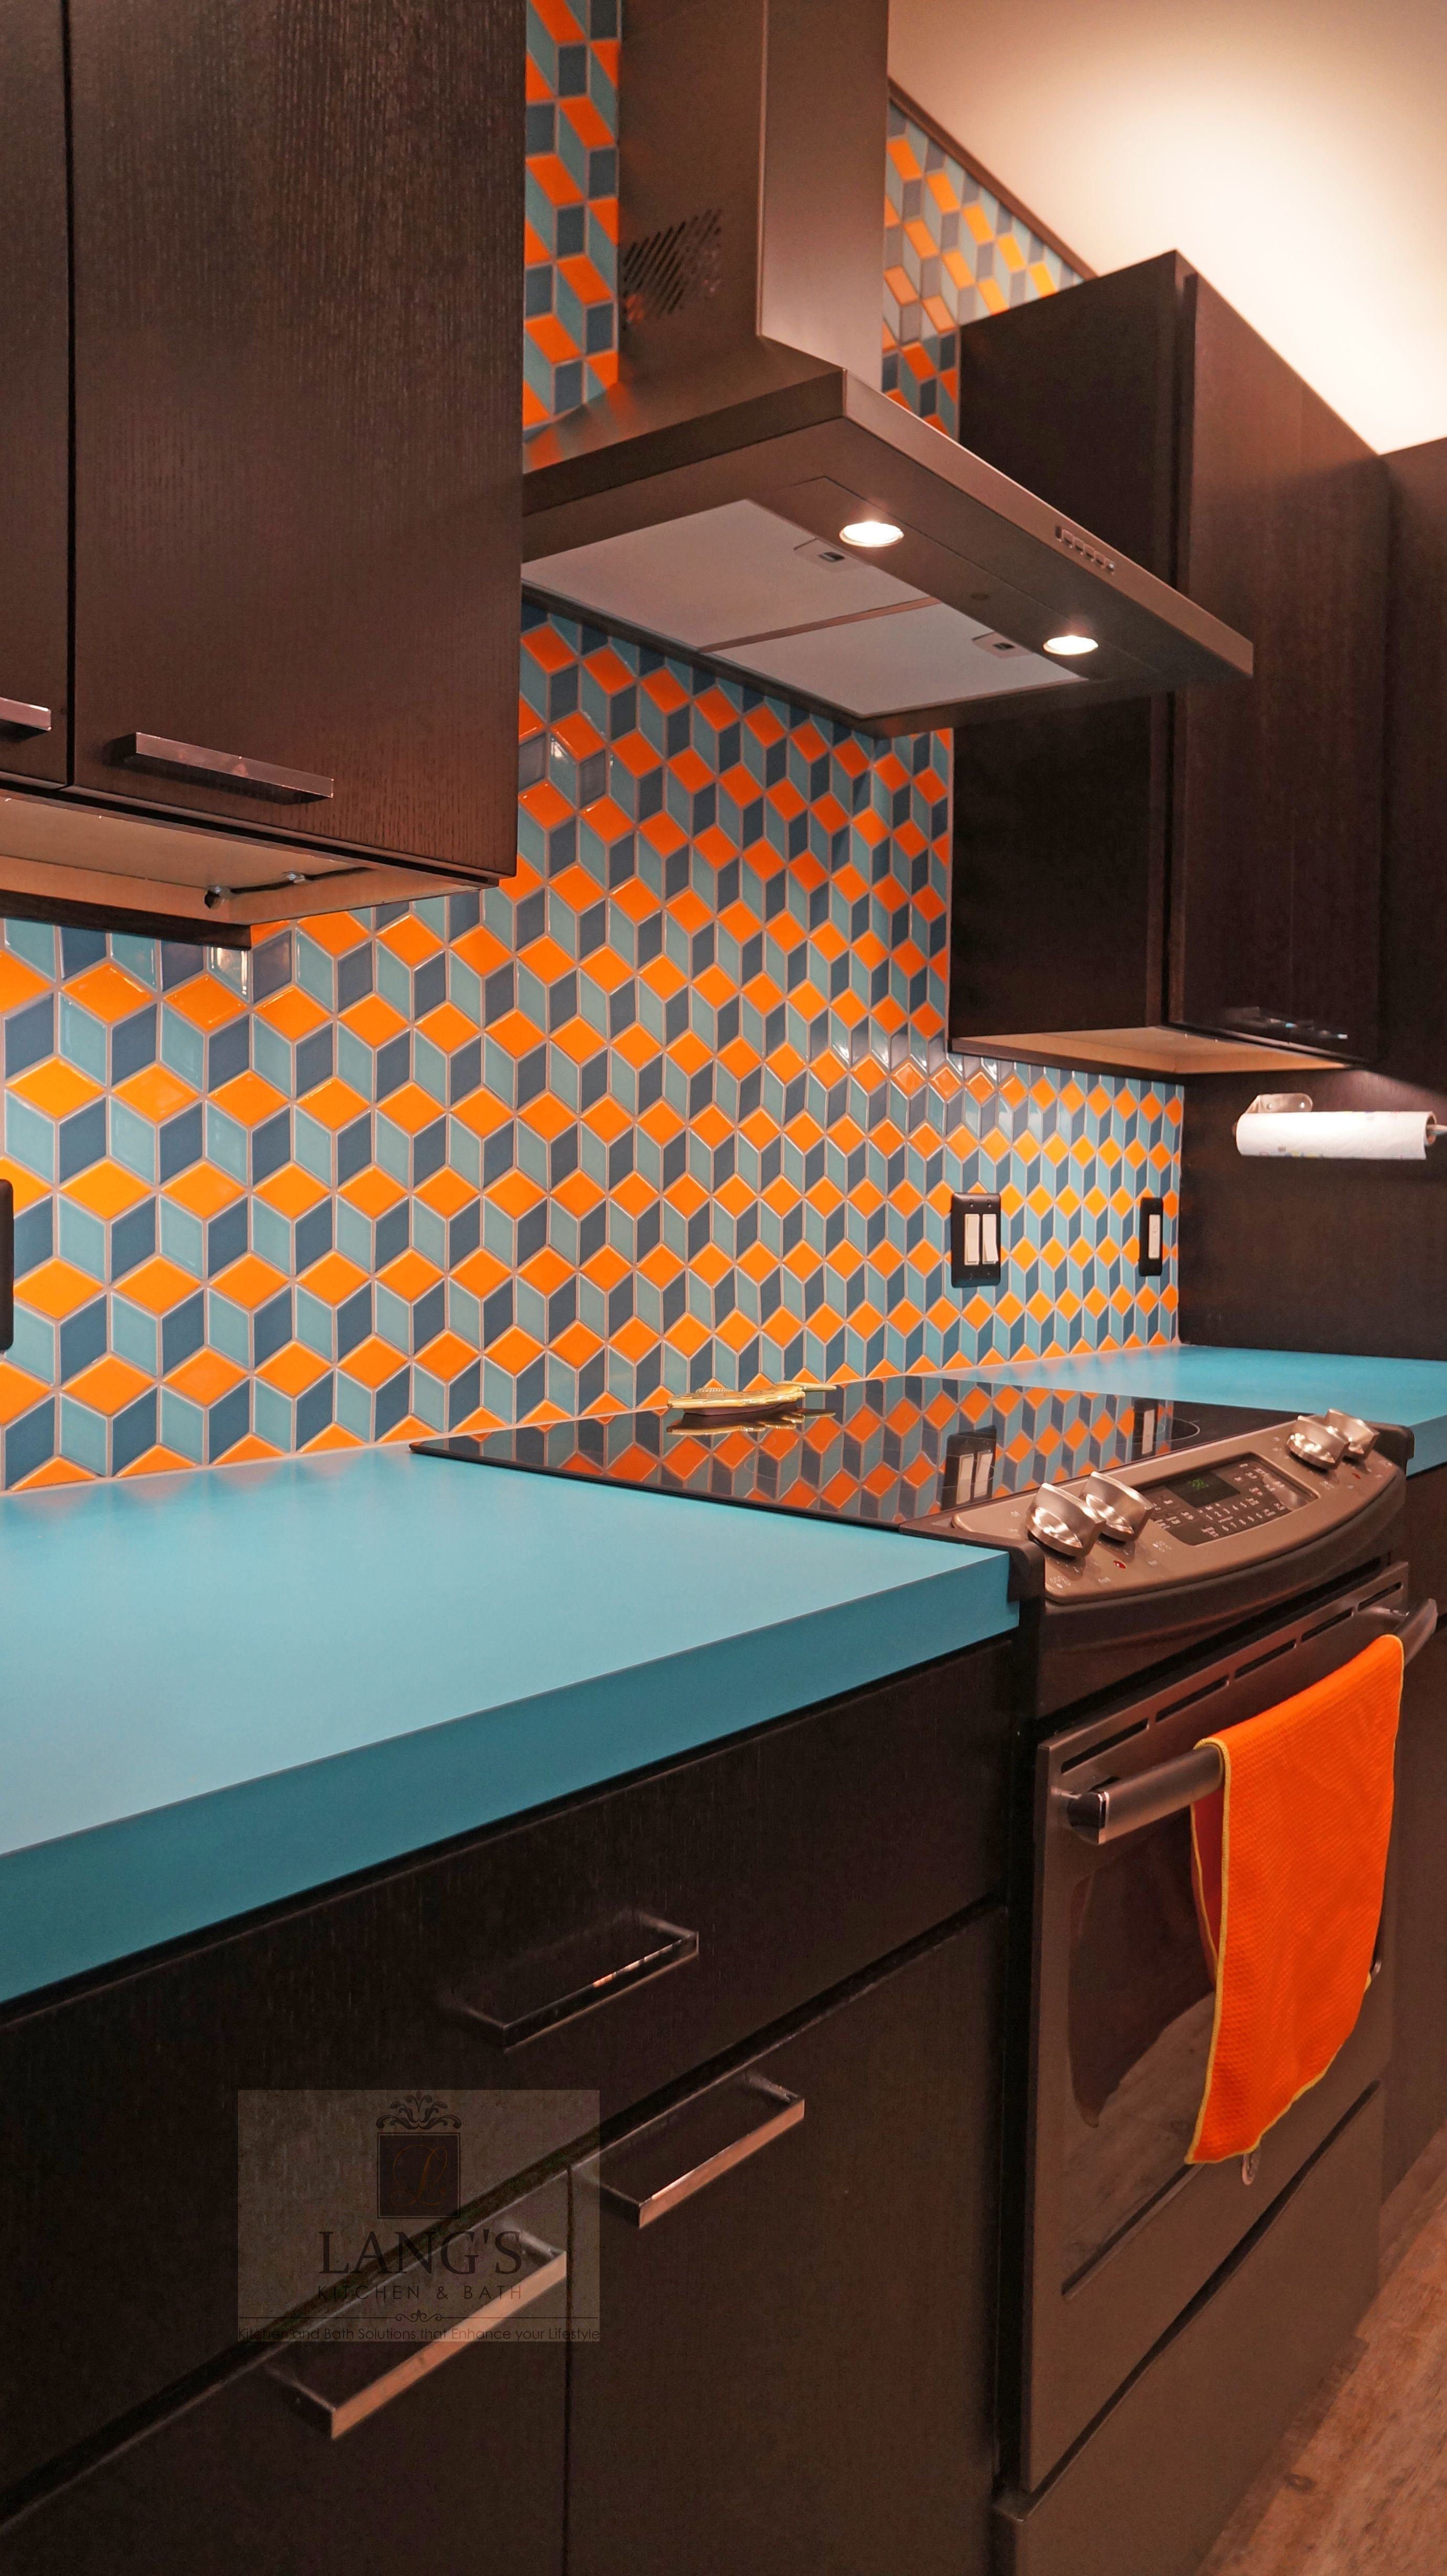 This Dynamic Kitchen Design Is One Of A Kind With A Blue Laminate Wilsonart Countertop And Clayhaus Ceramics 3 Dimension Kitchen Design Showrooms Kitchen Design